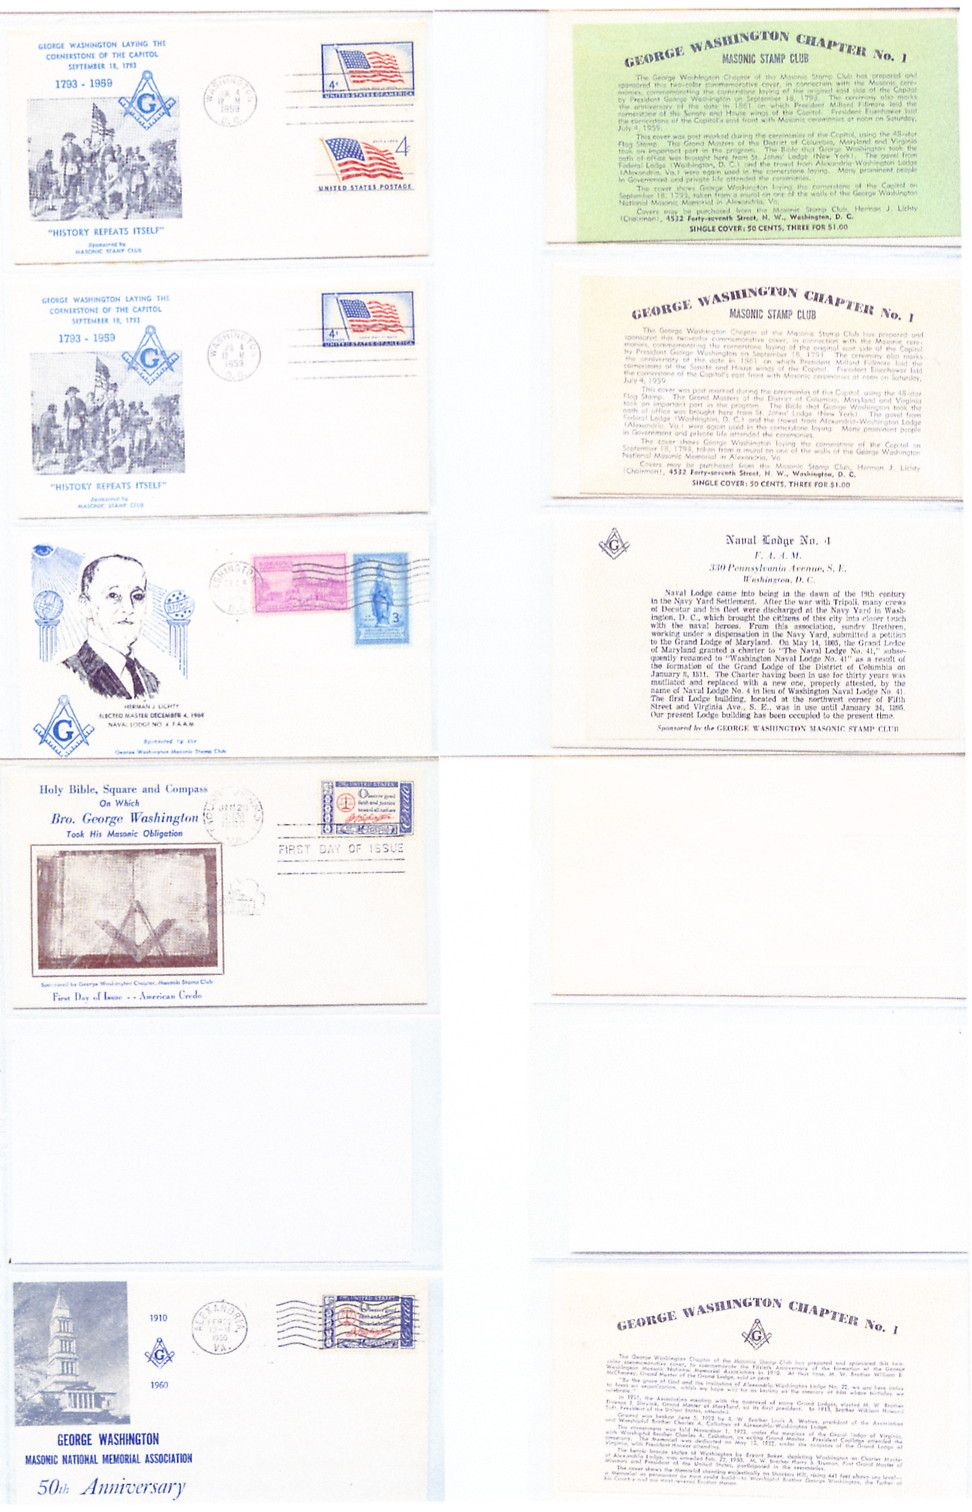 1959 GWMSC Covers